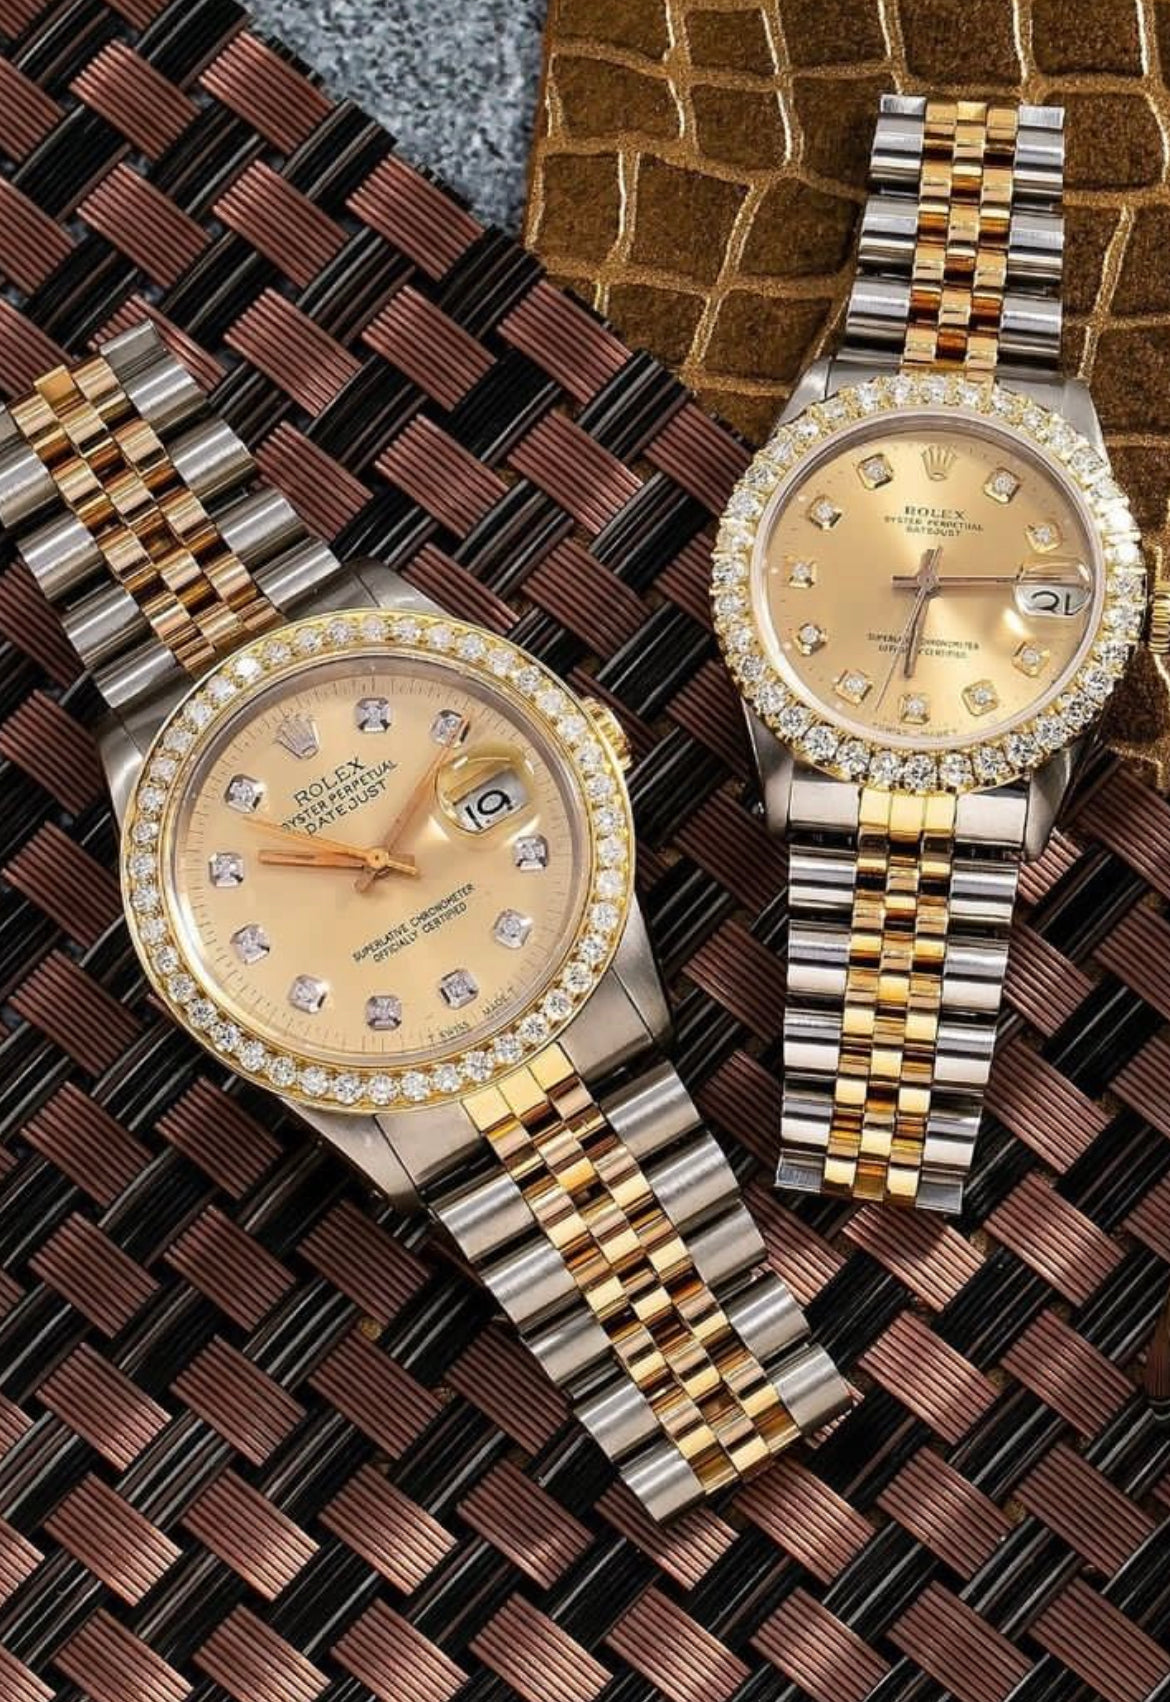 Rolex Datejust Diamond Watch, 31mm, with diamond dial and bezel oyster band